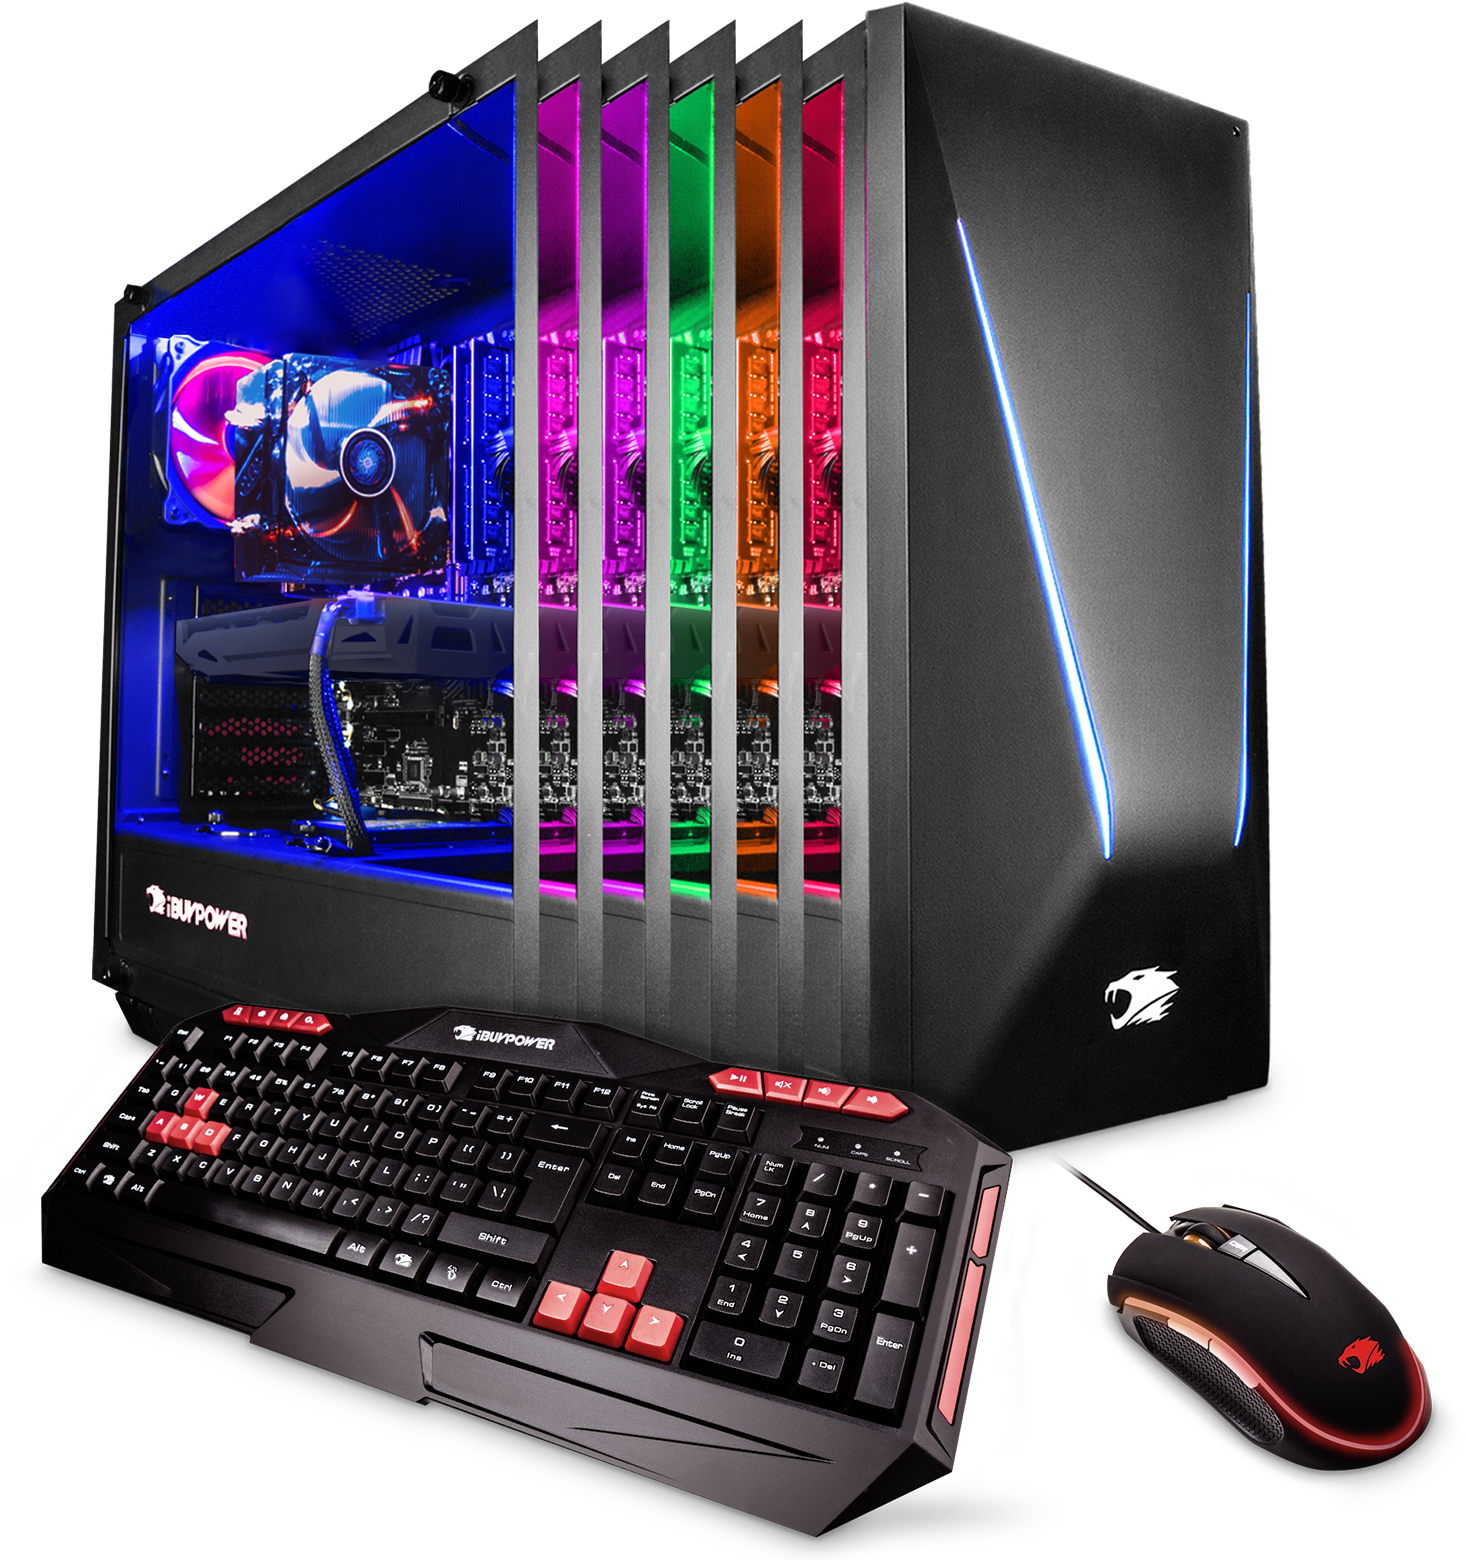 Microsoft - iBUYPOWER Trace 049i Gaming Desktop